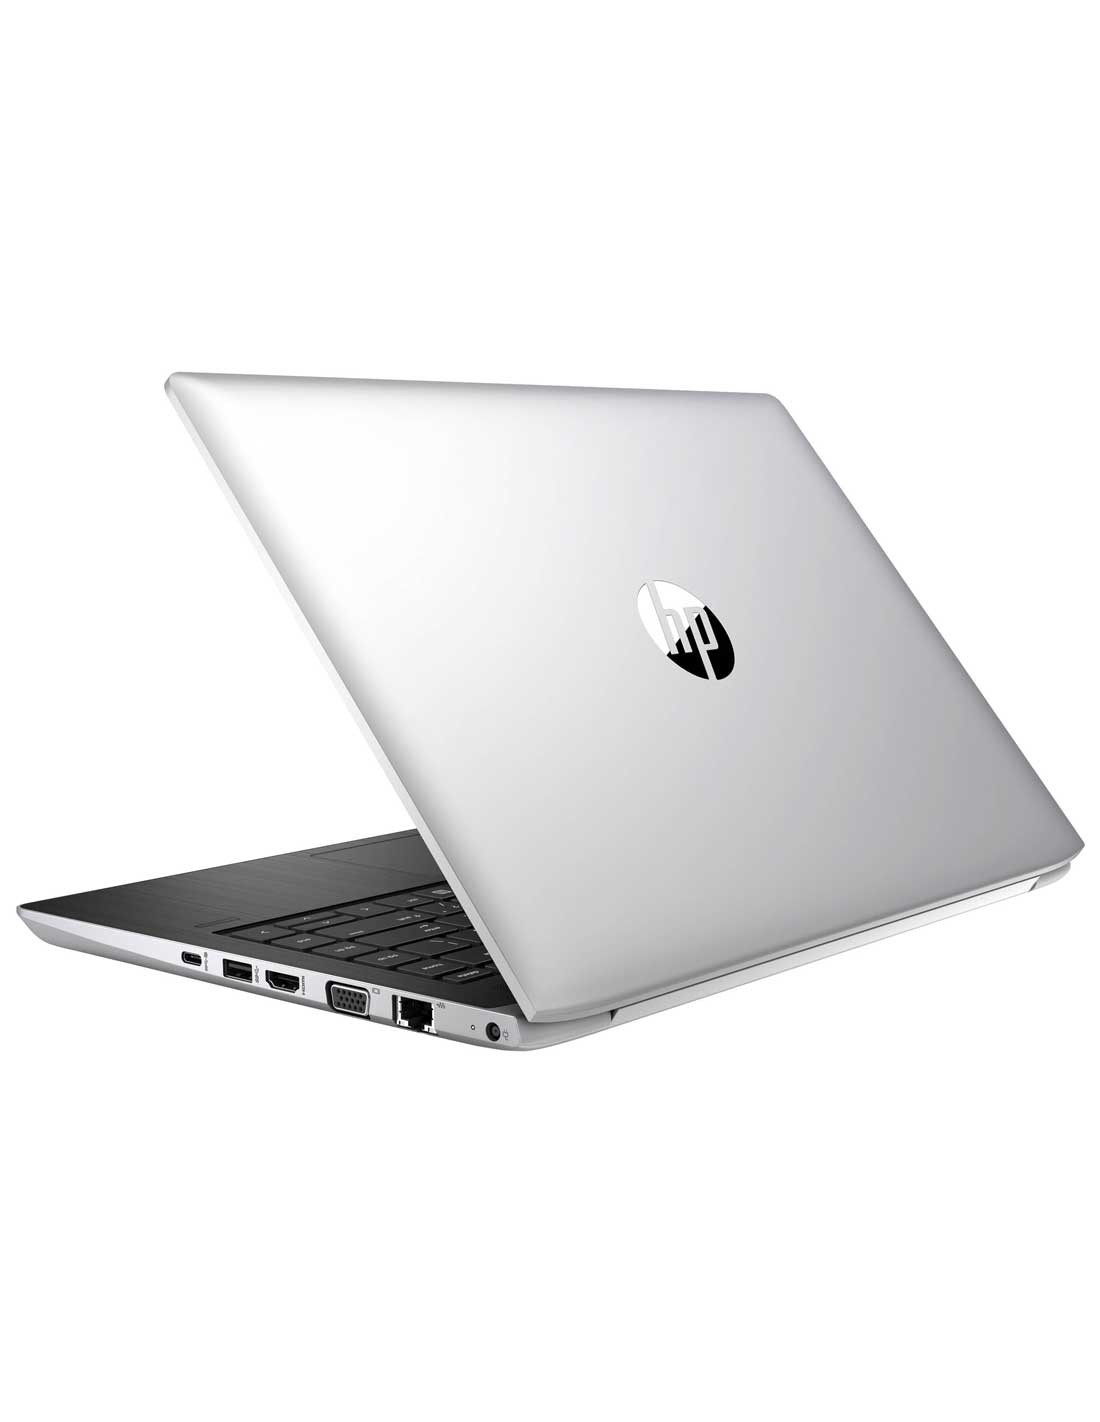 HP ProBook 430 G5 Notebook images and photos